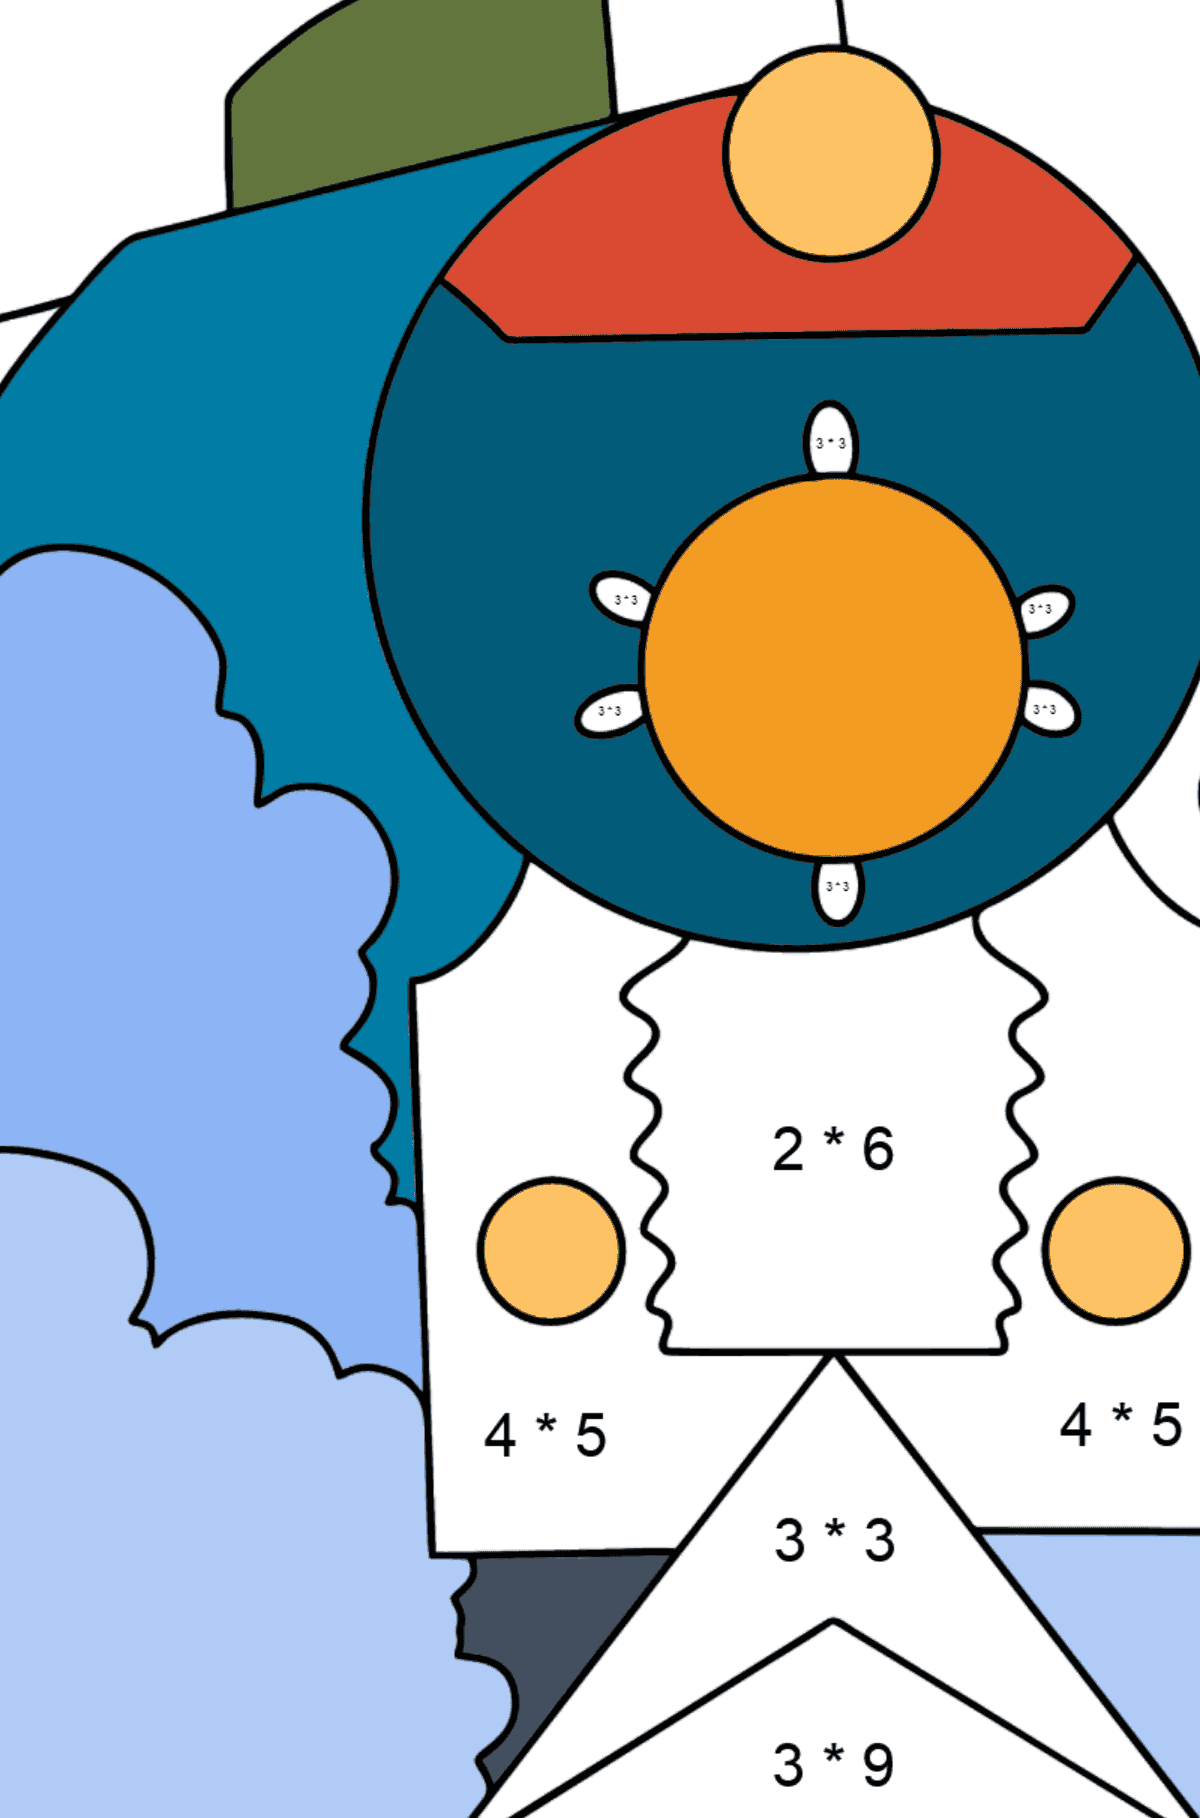 Coloring Page - A Locomotive with Coaches - Math Coloring - Multiplication for Kids